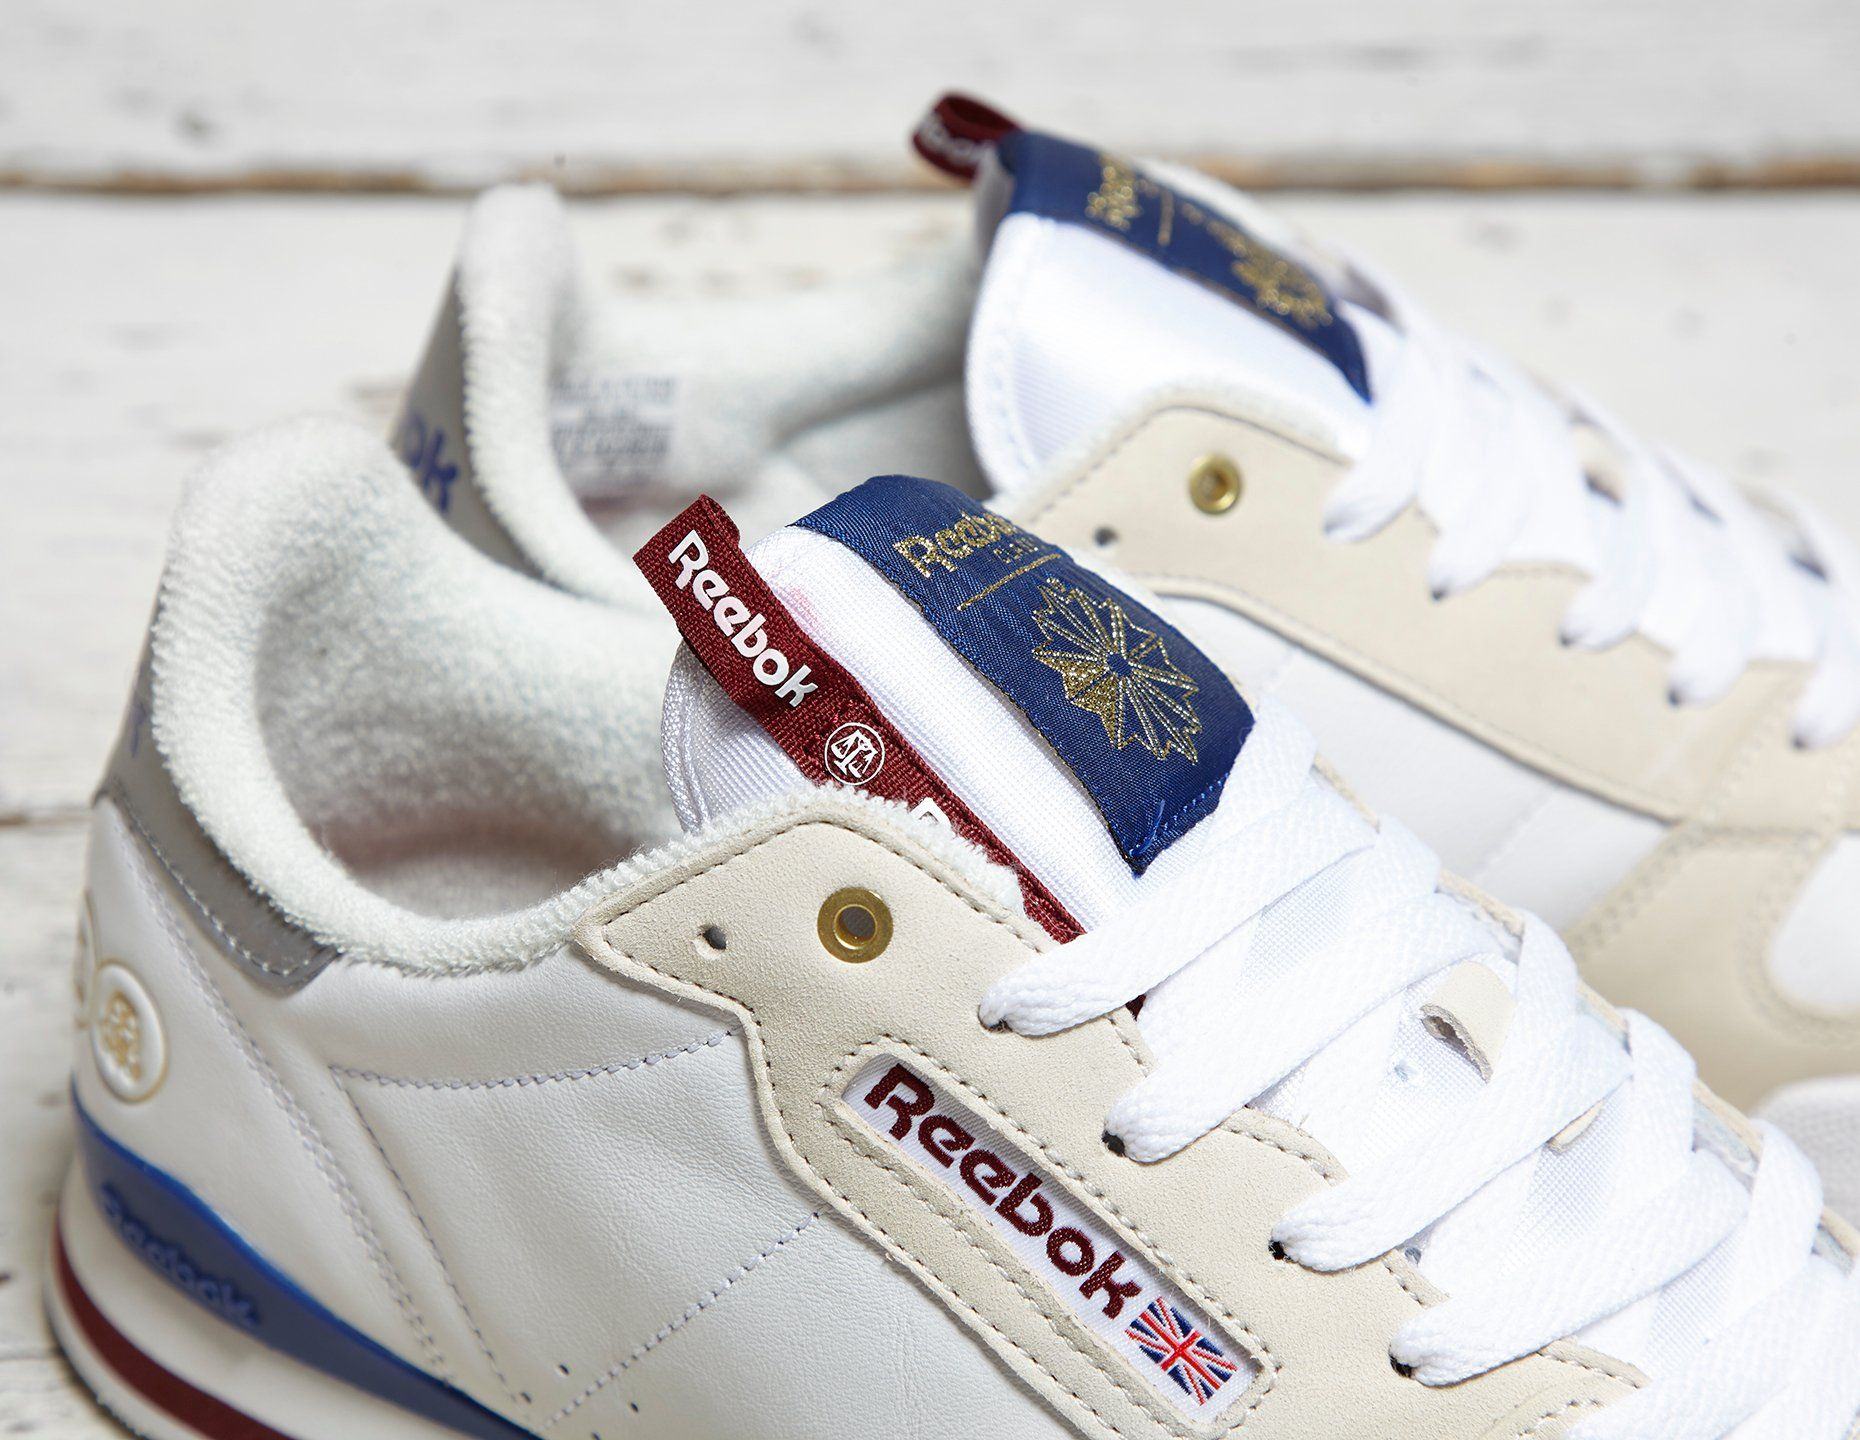 Reebok x Footpatrol x Highs and Lows Phase 1